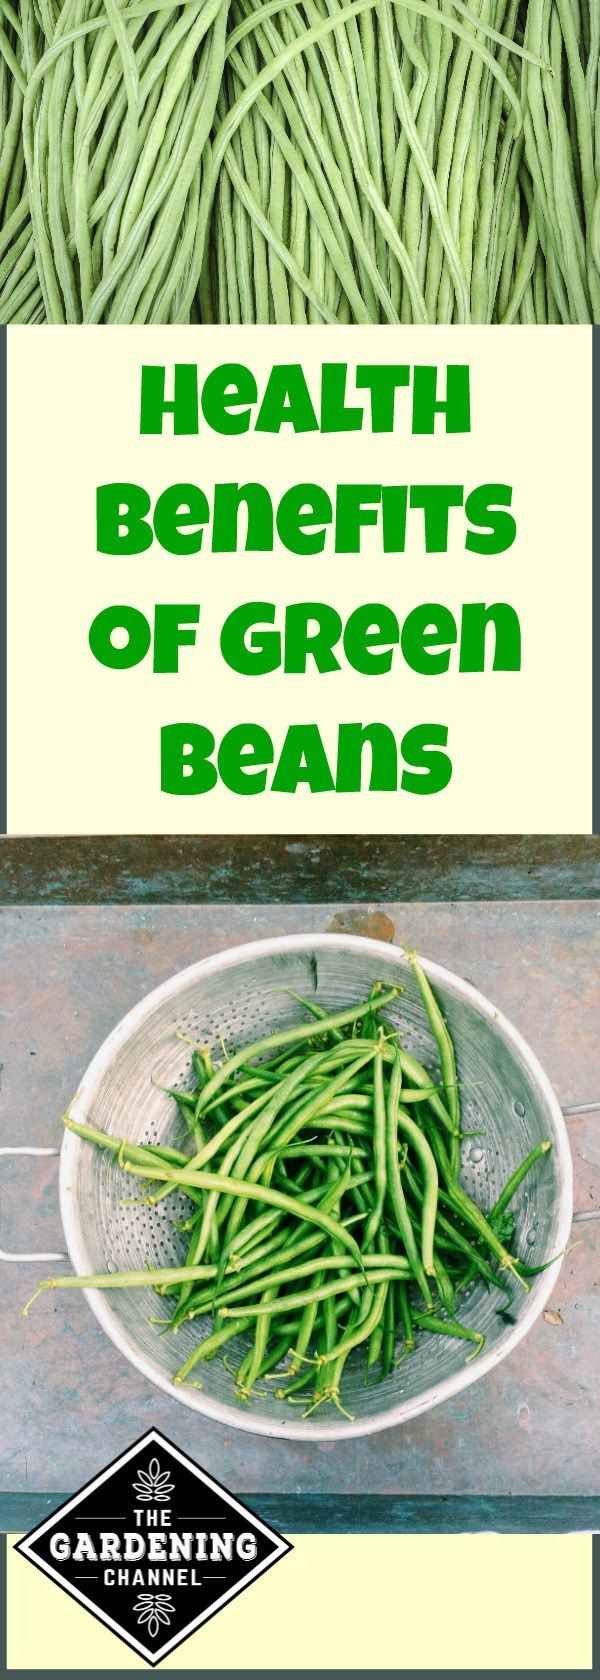 Green beans are easy to grow and they have lots of health benefits.  Try planting this vegetable in your garden next spring.